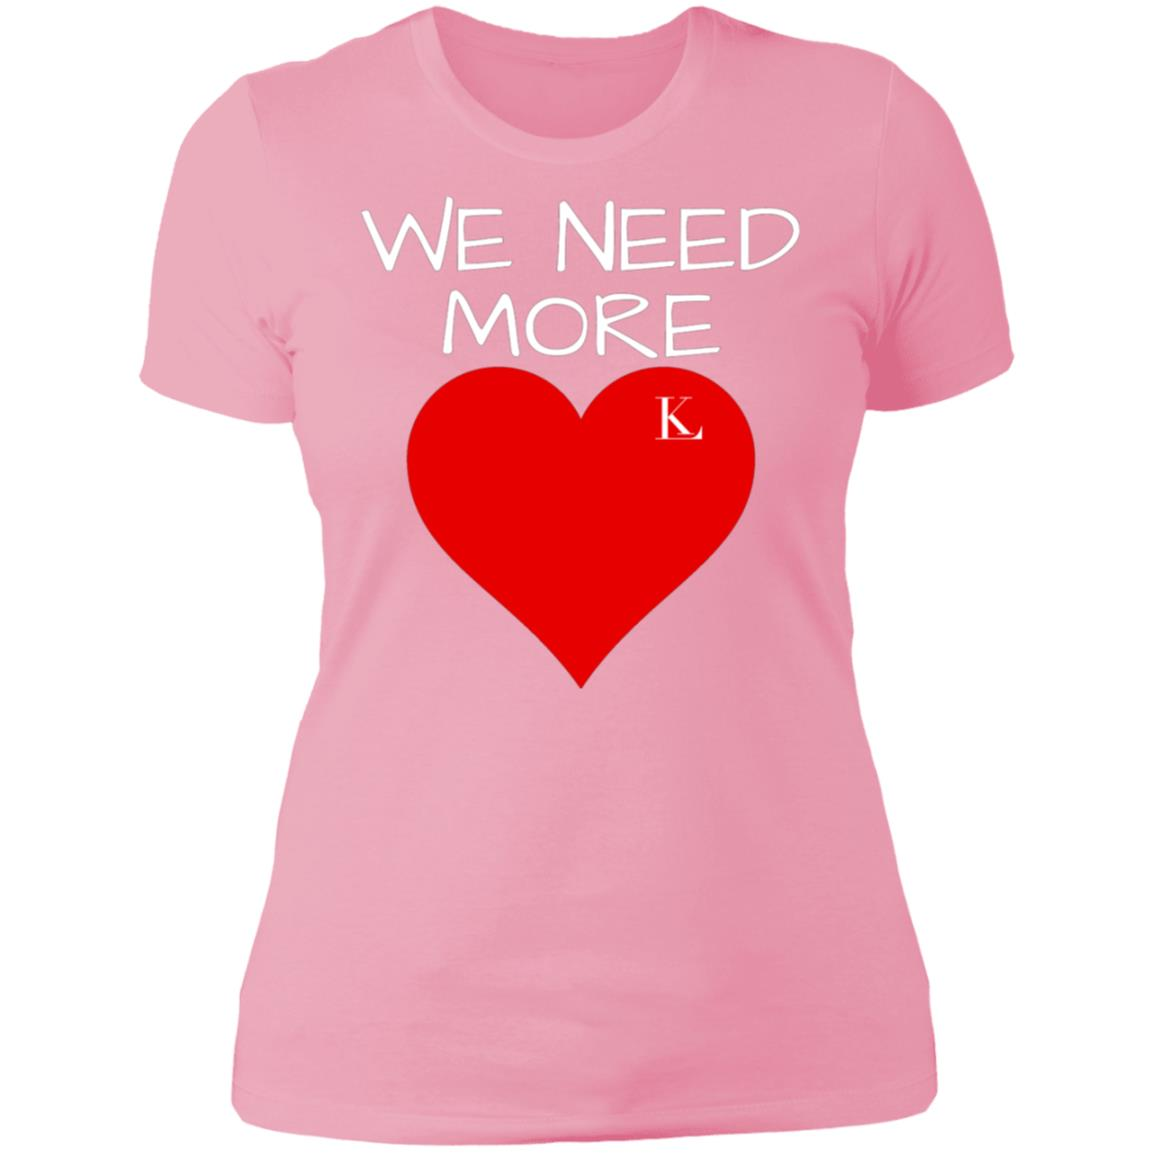 We Need More Love Women's Crew Neck T-Shirt